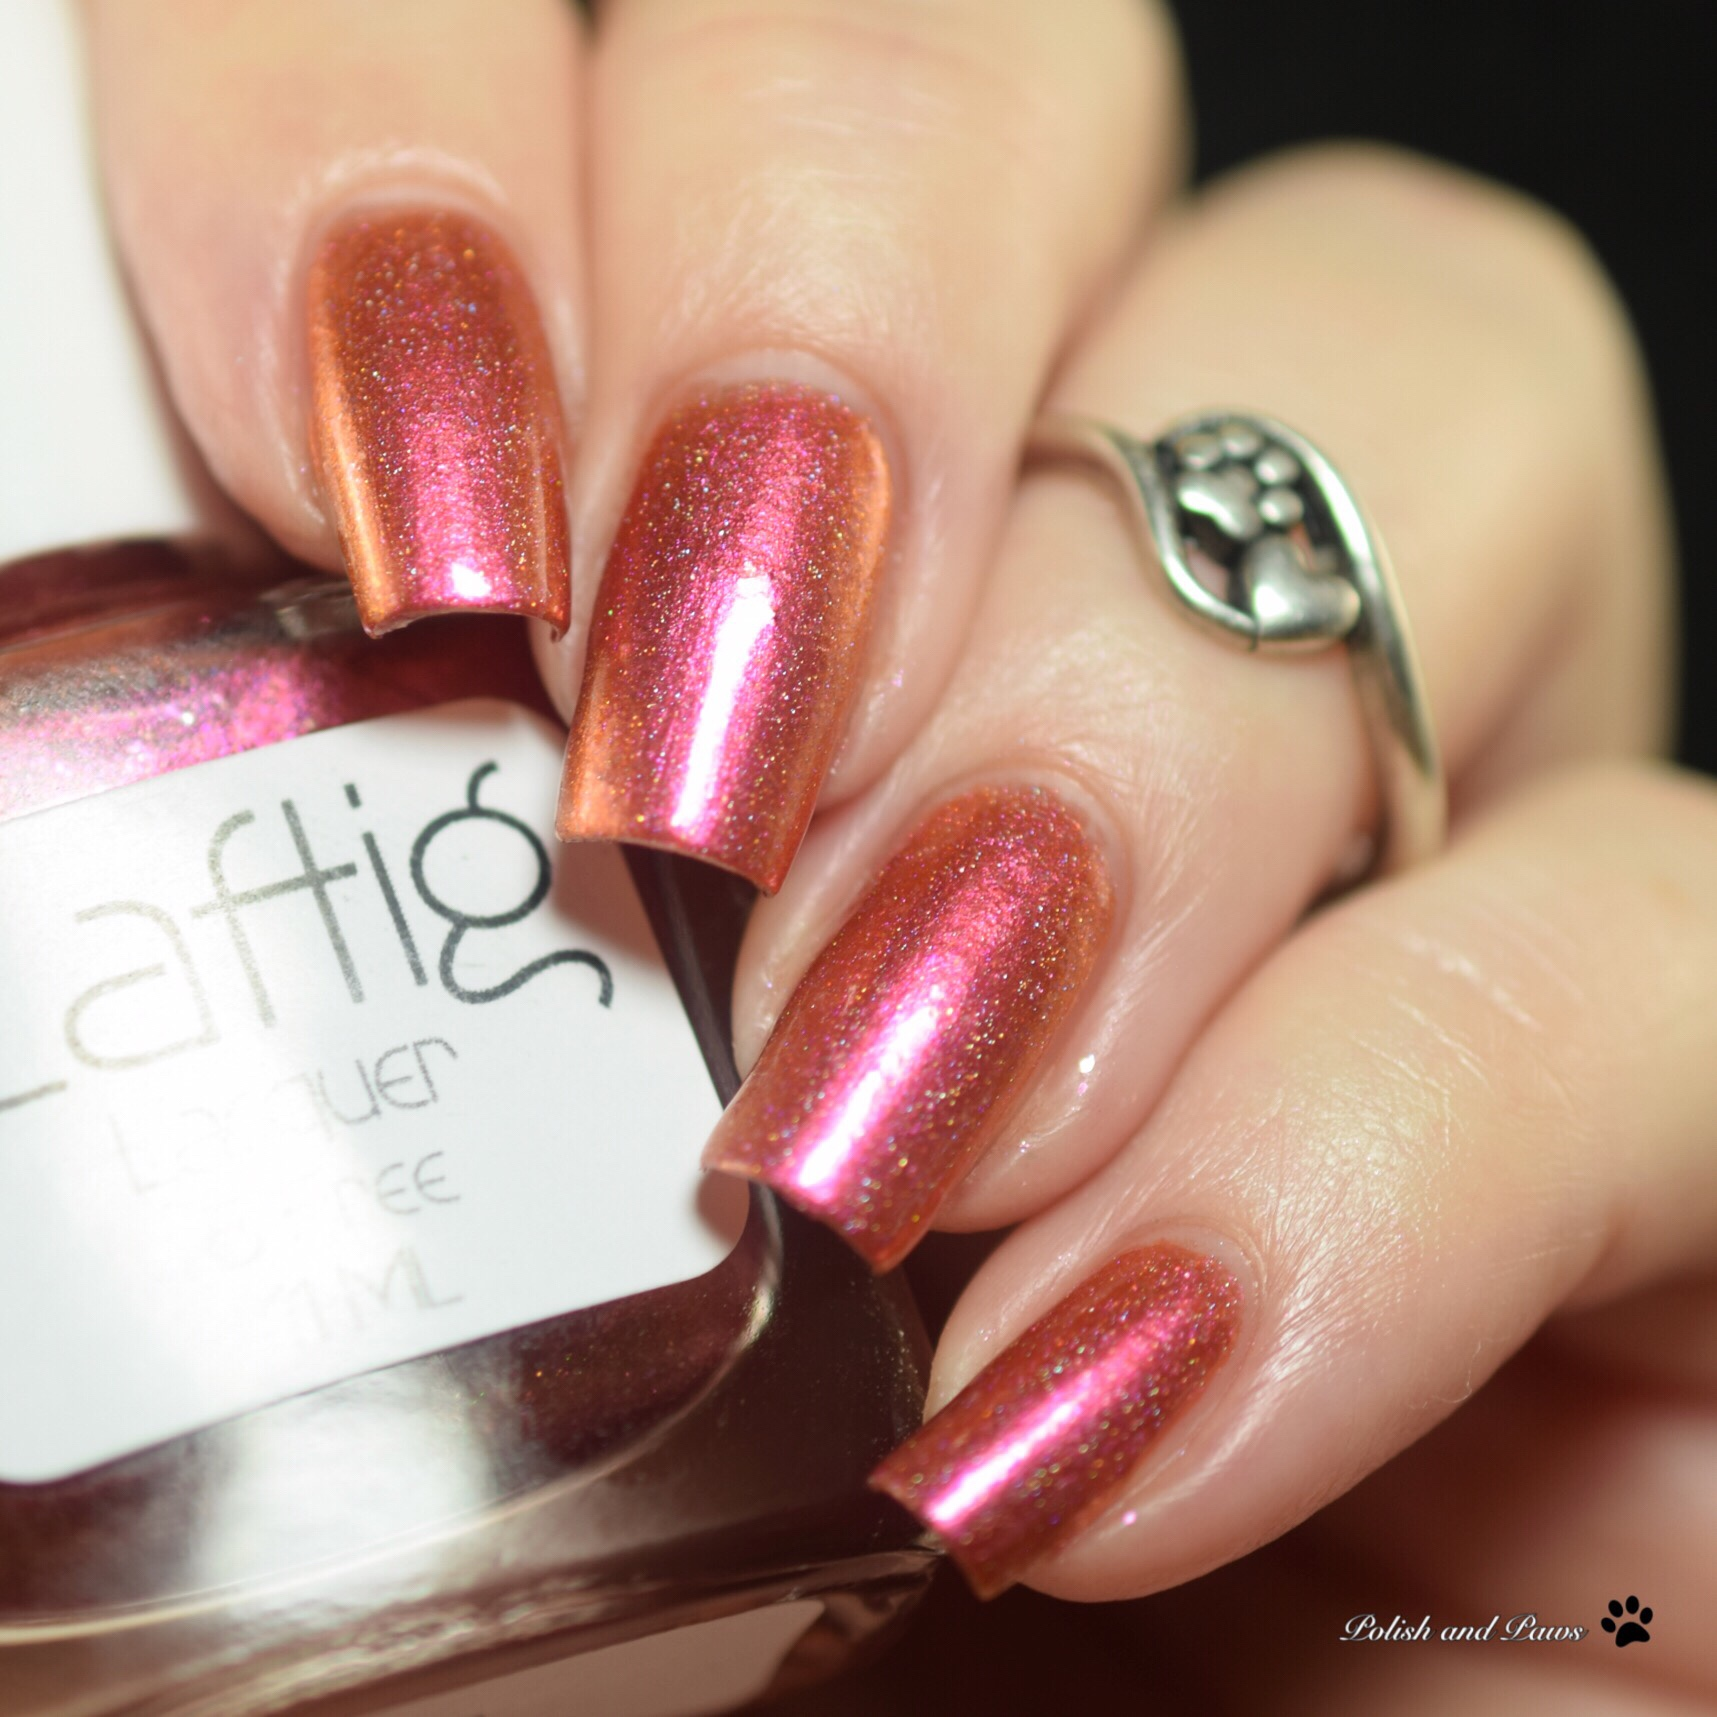 Zaftig Lacquer Swatch and Review ~ Premier Trios | Polish and Paws